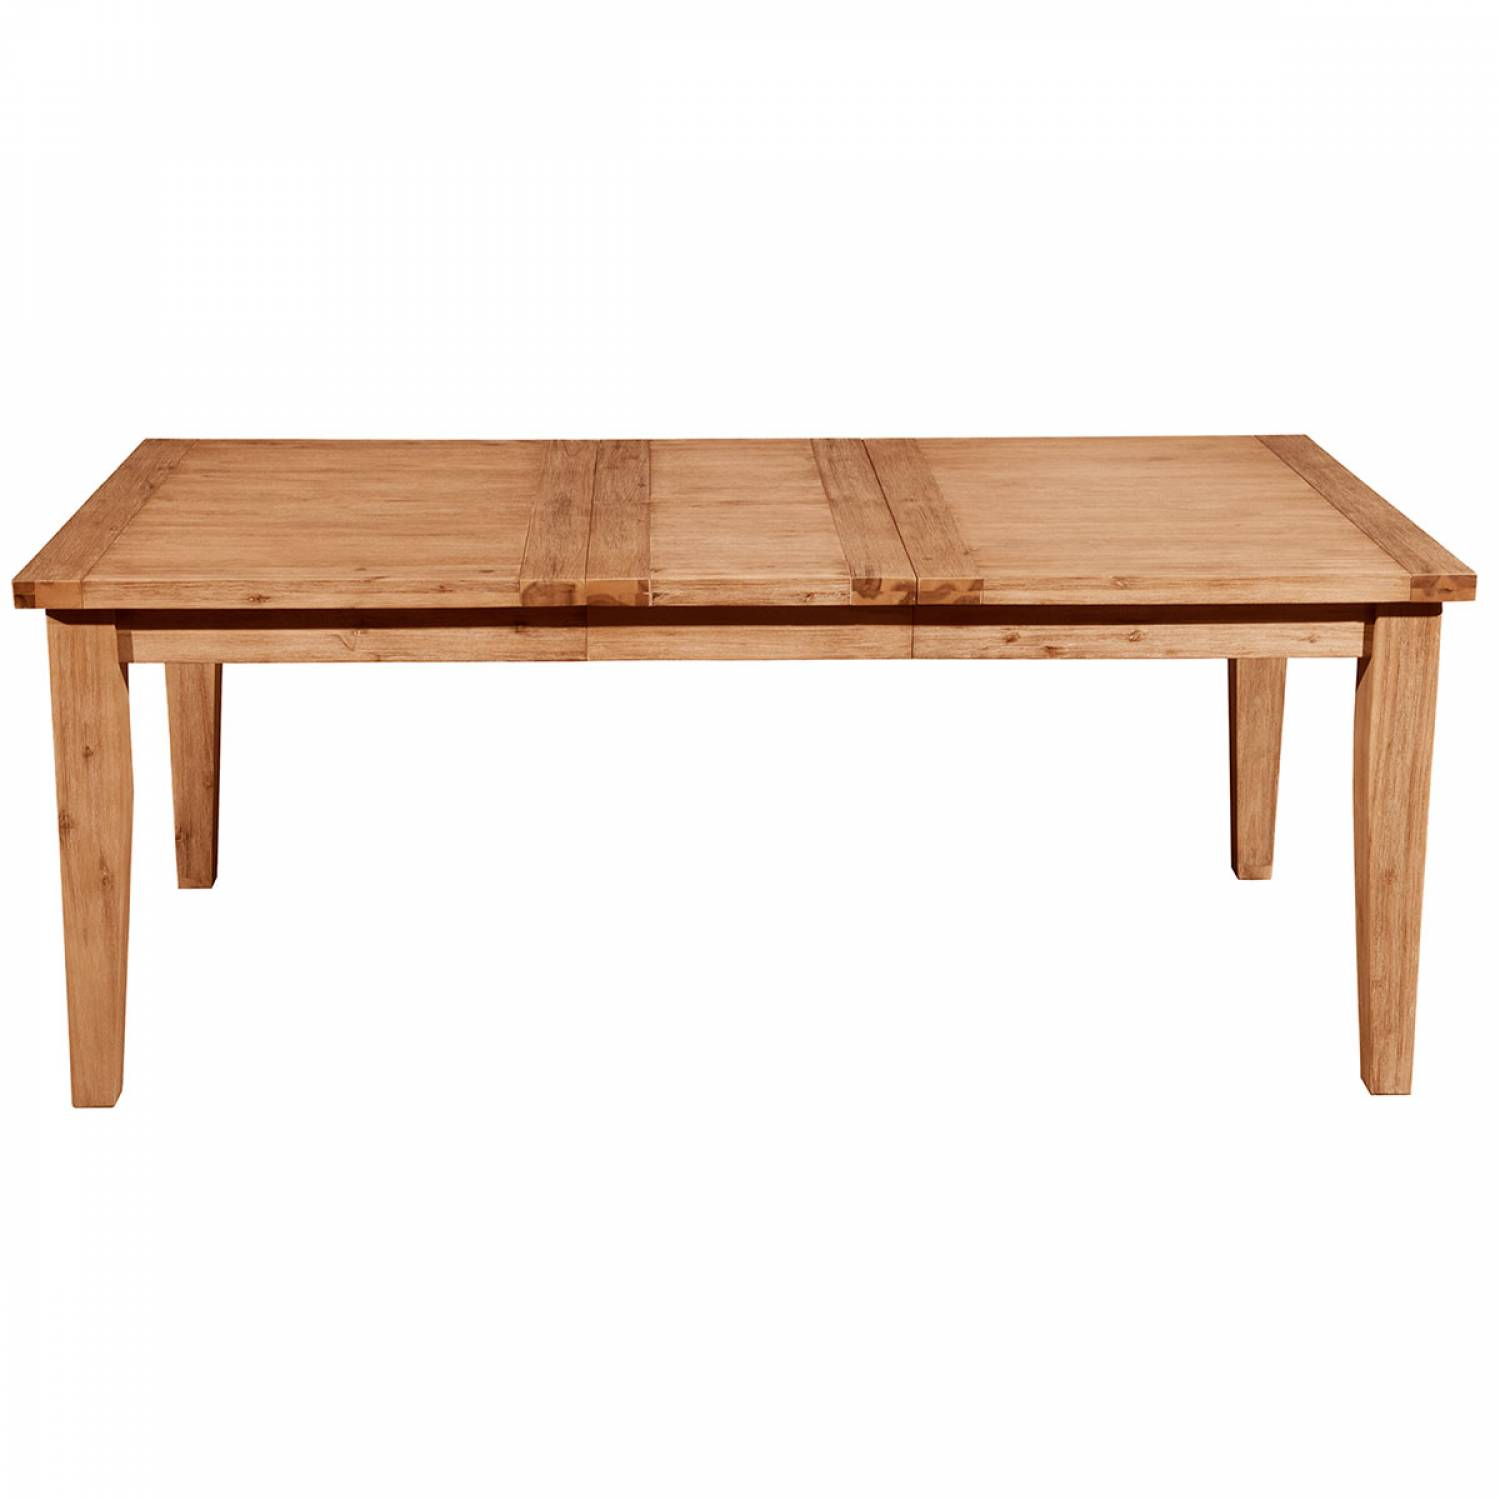 8812 Alpine Furniture 01 Aspen Extension Dining Table Butterfly